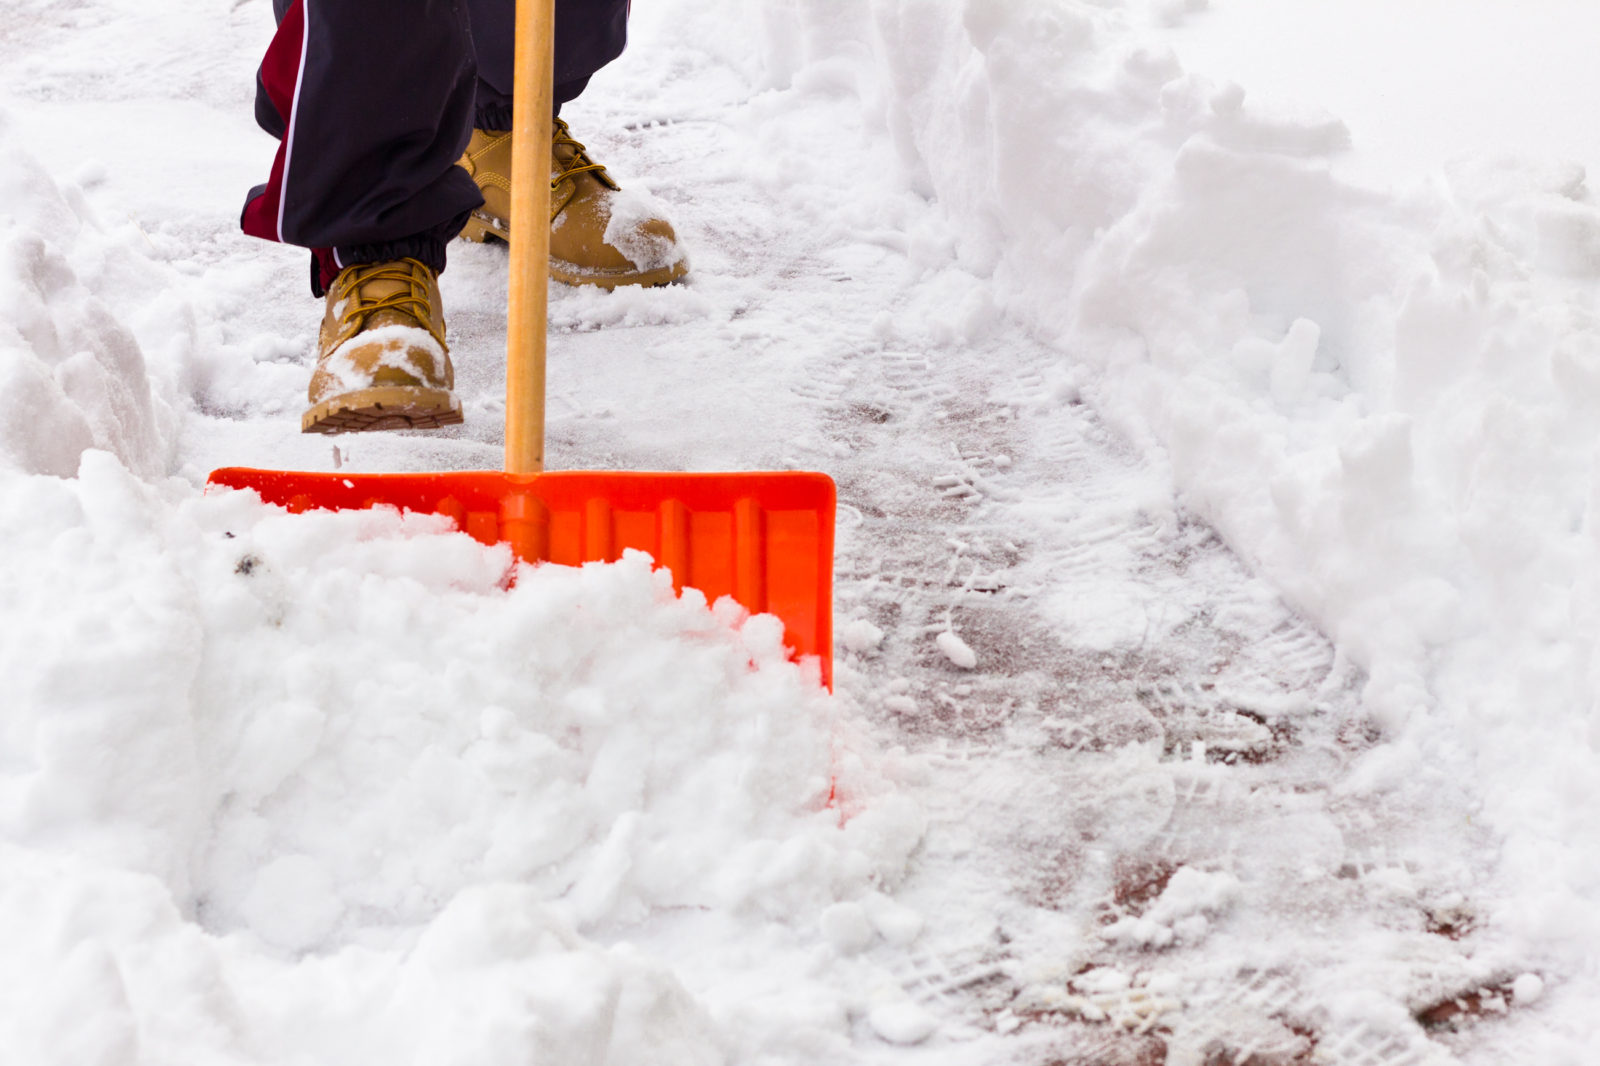 A picture of someone shoveling snow from a sidewalk, to illustrate a winter storm alert post. LCA